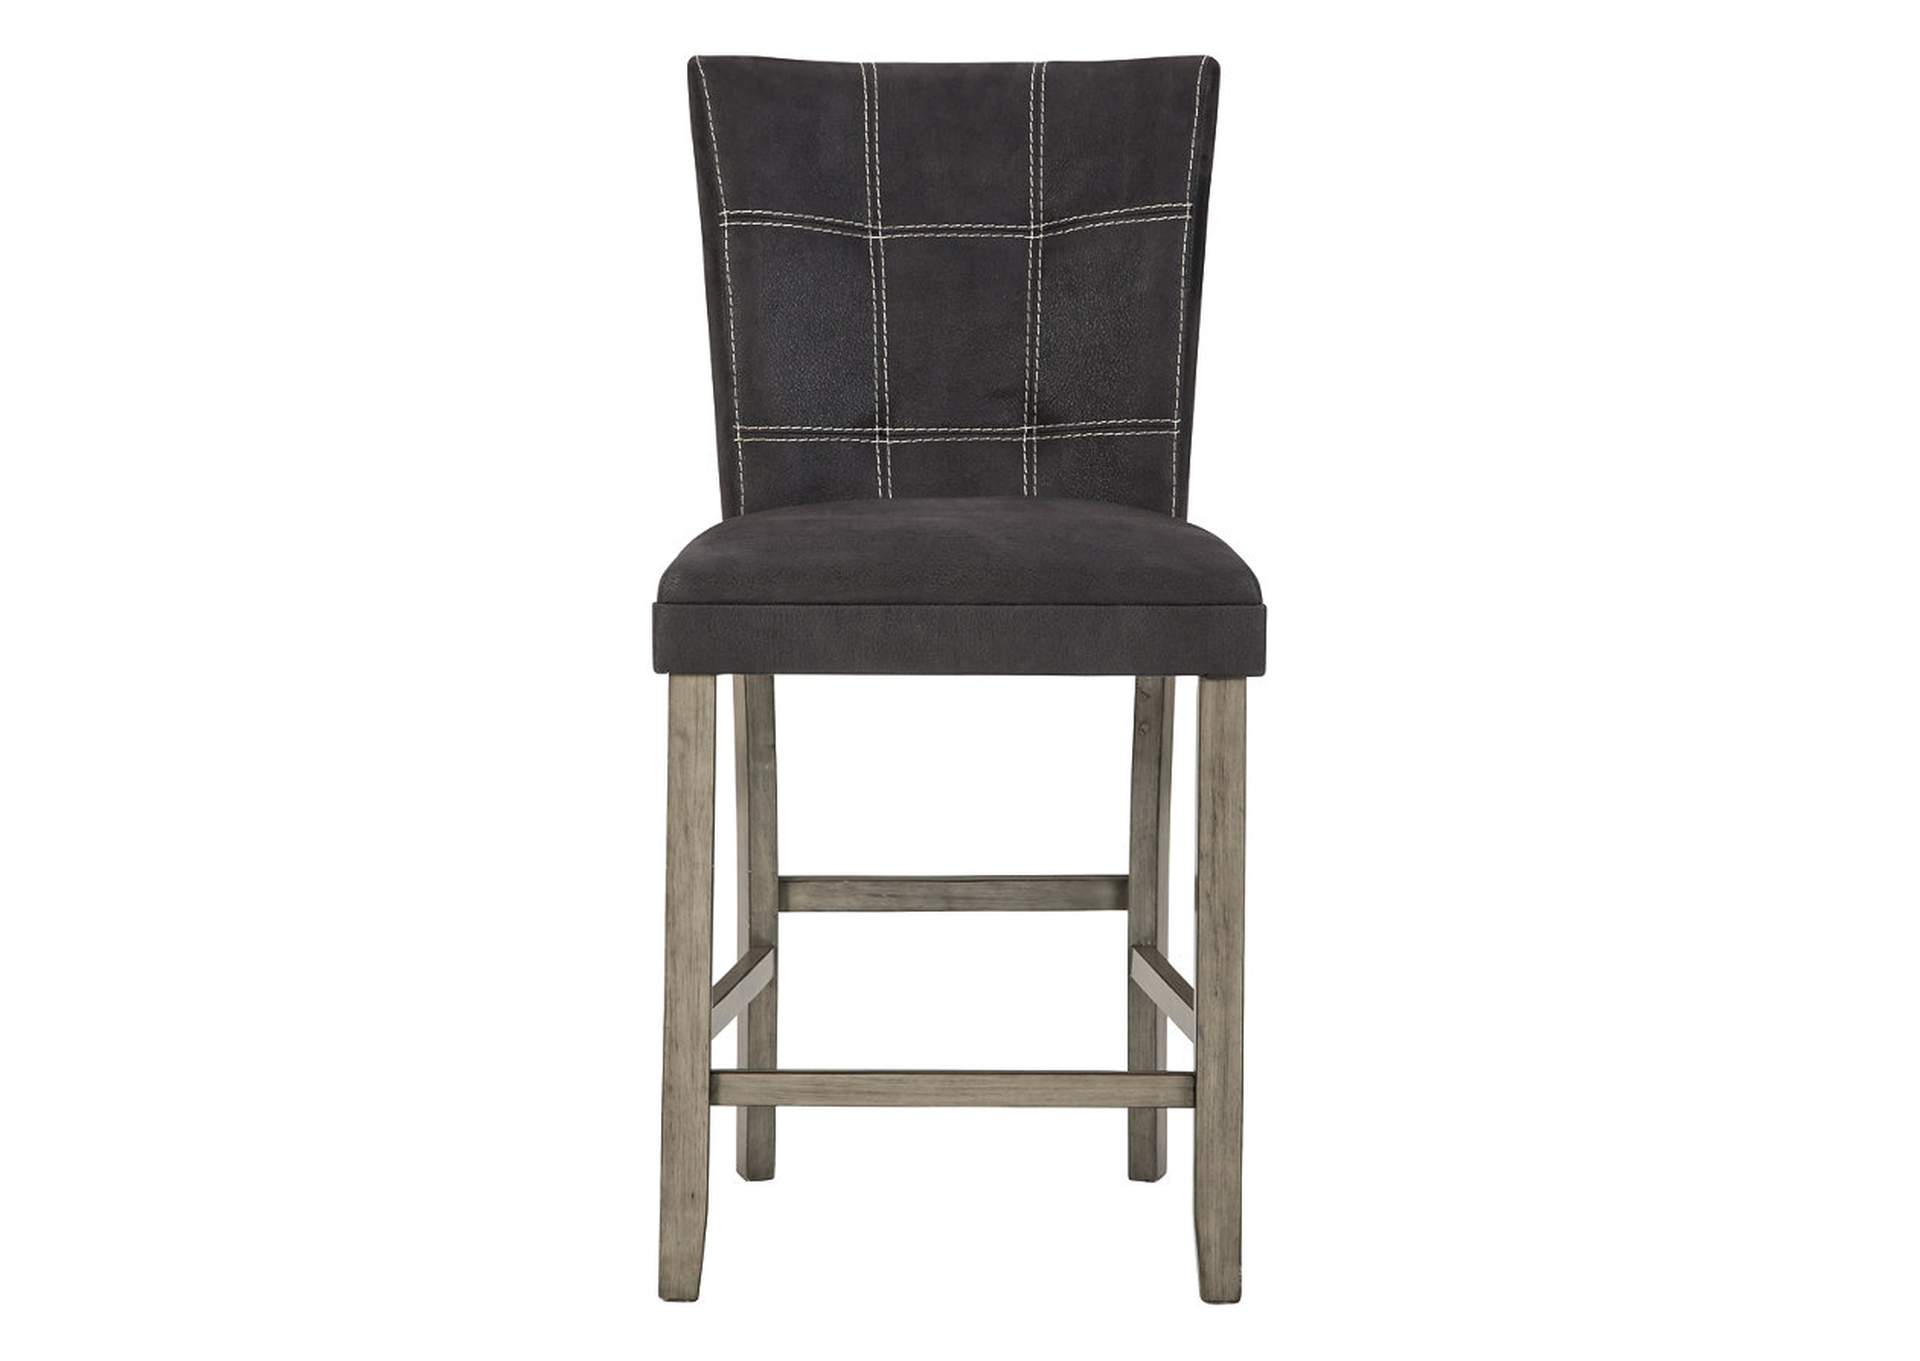 Dontally Counter Height Bar Stool,Benchcraft